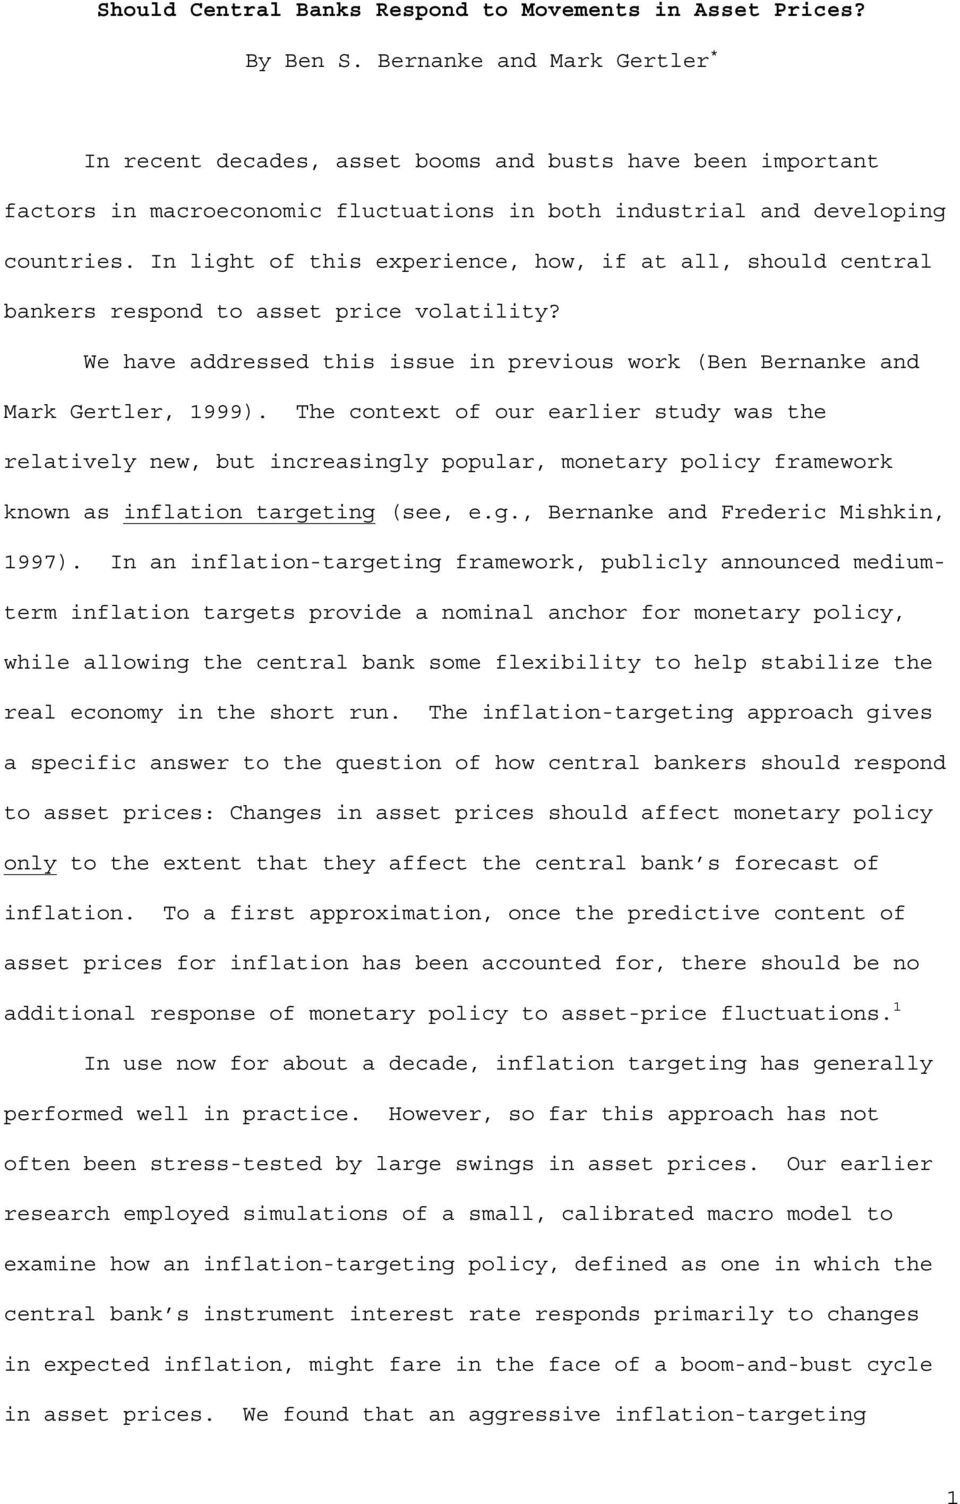 In light of this experience, how, if at all, should central bankers respond to asset price volatility? We have addressed this issue in previous work (Ben Bernanke and Mark Gertler, 1999).